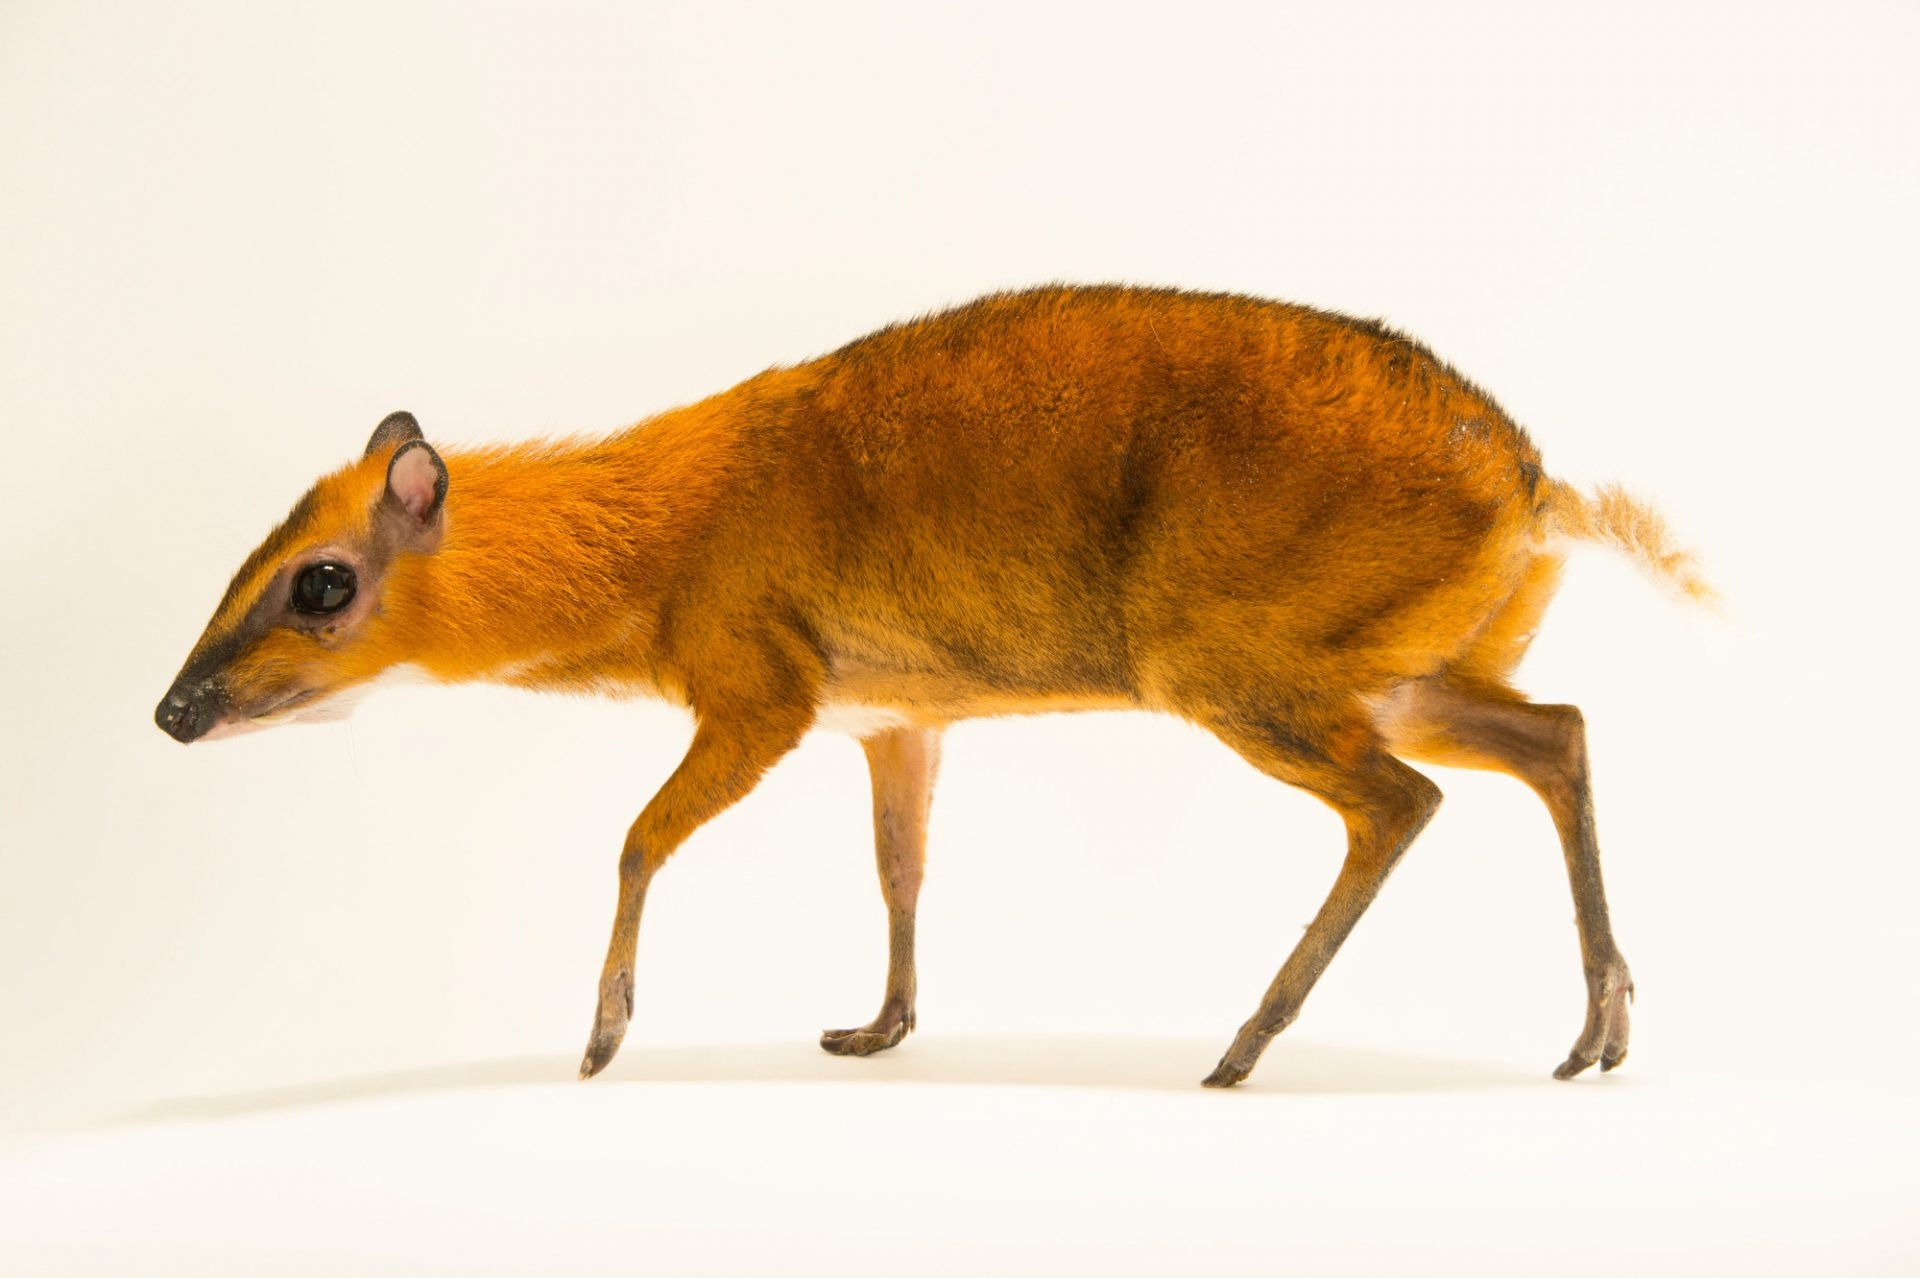 Picture of a greater mouse deer, greater Malay chevrotain or napu (Tragulus napu) at the Topeka Zoo.